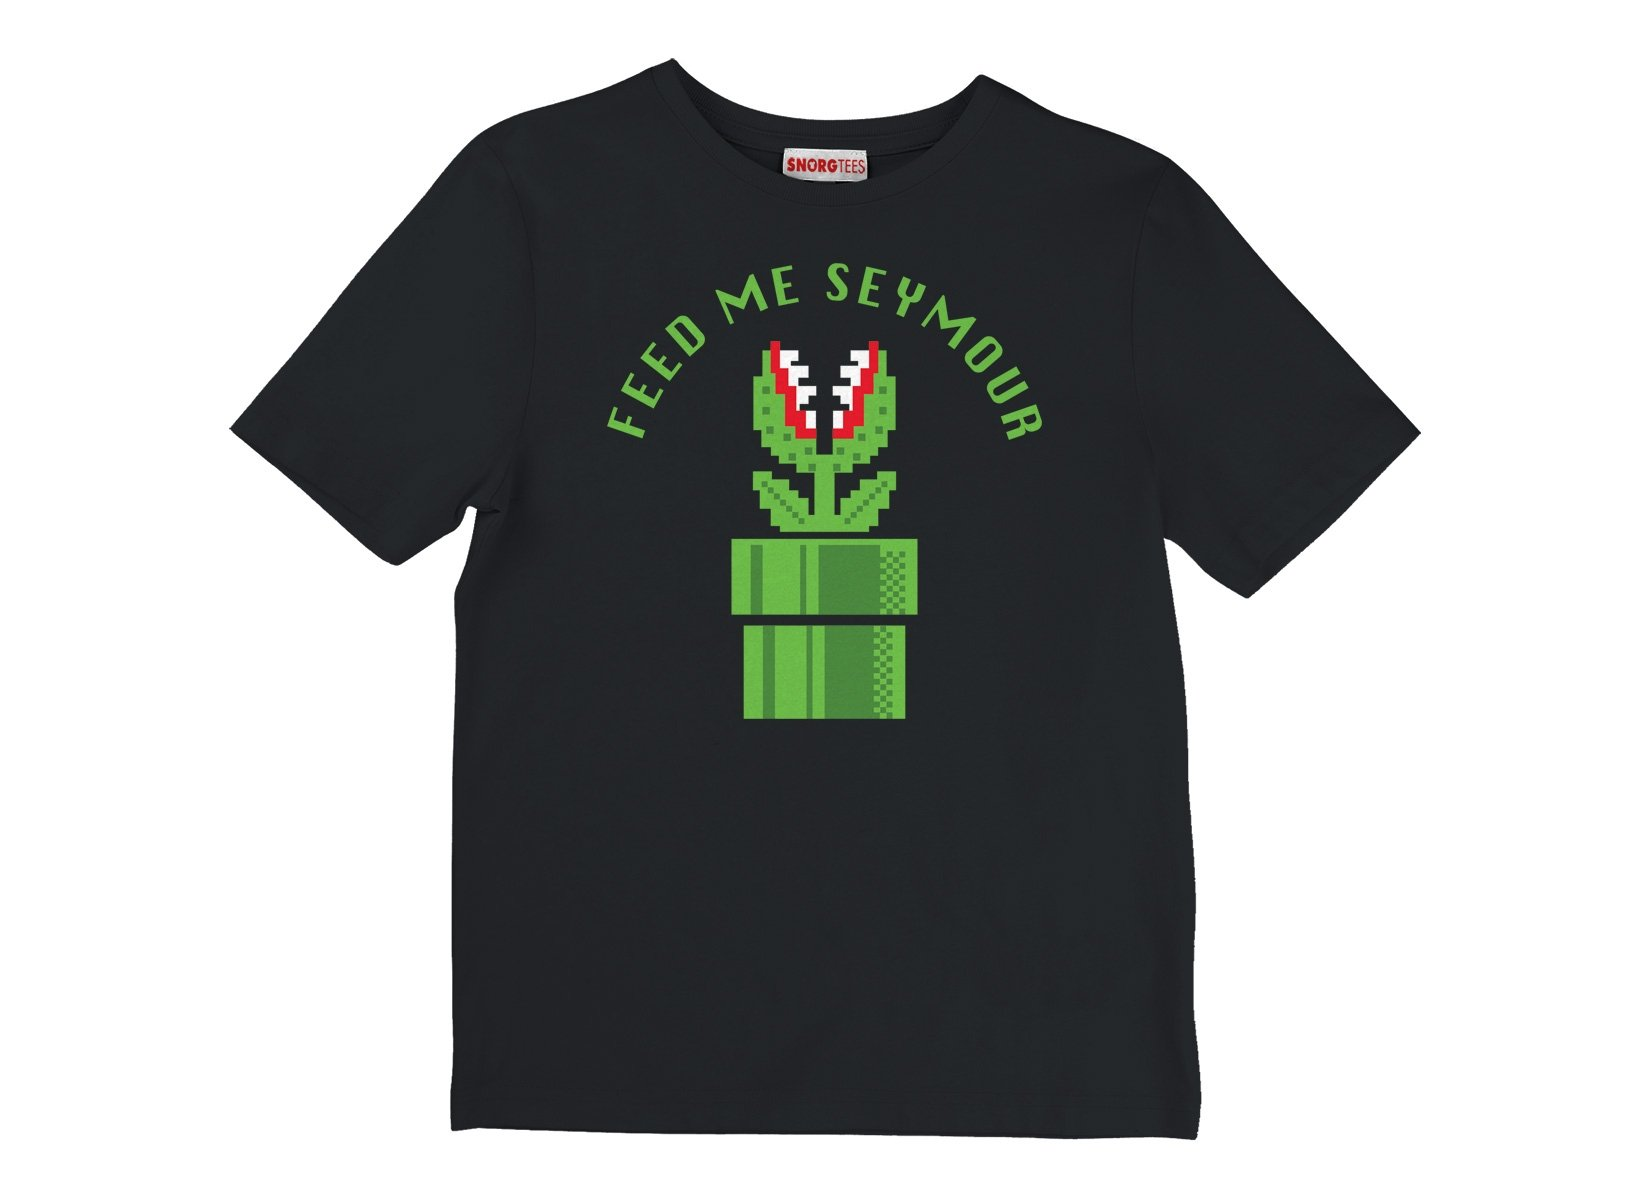 Feed Me Seymour on Kids T-Shirt